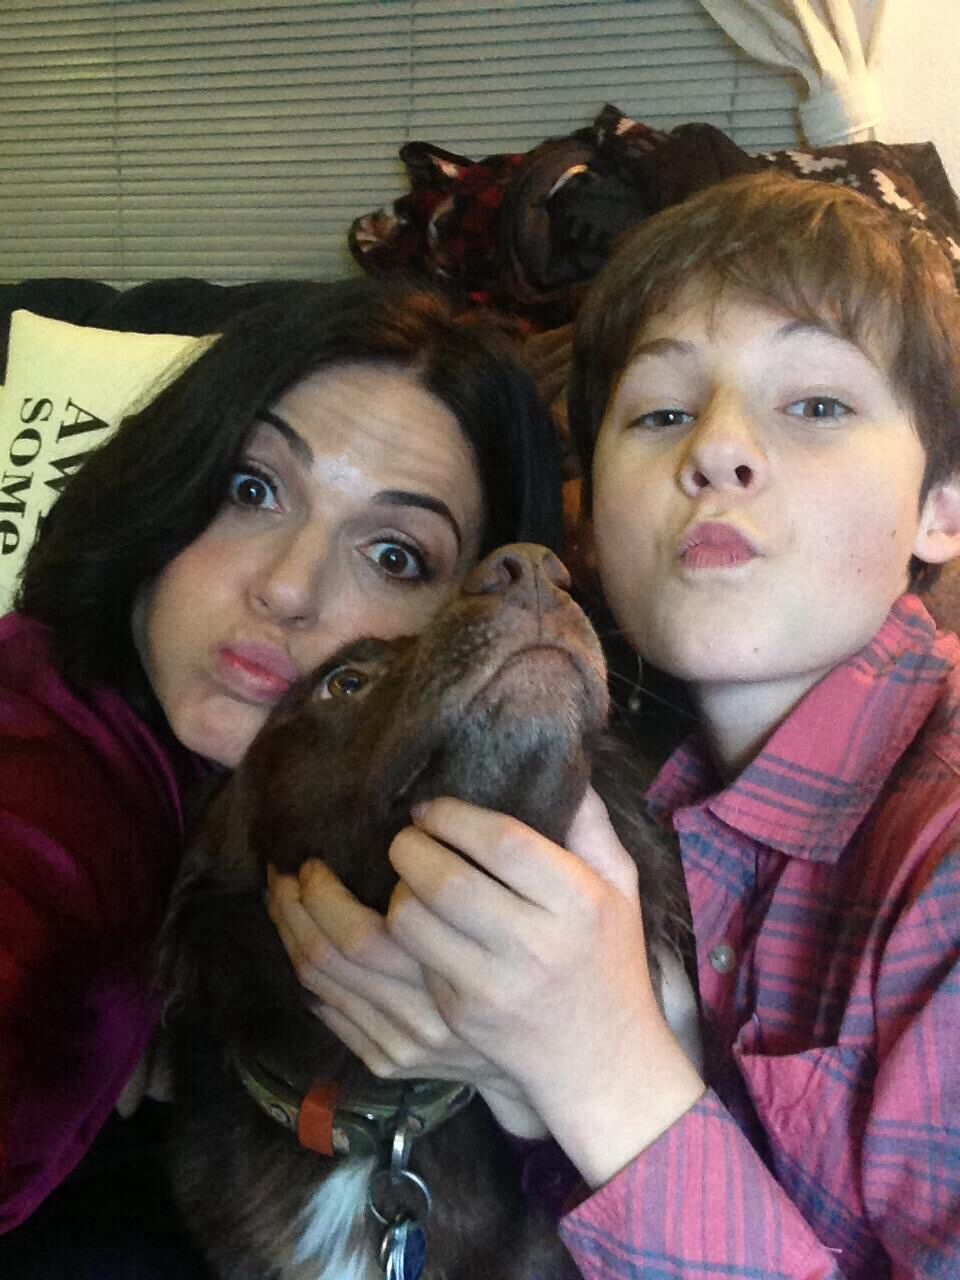 Lana Parrilla , lola and Jared Gilmore. Perfection!!